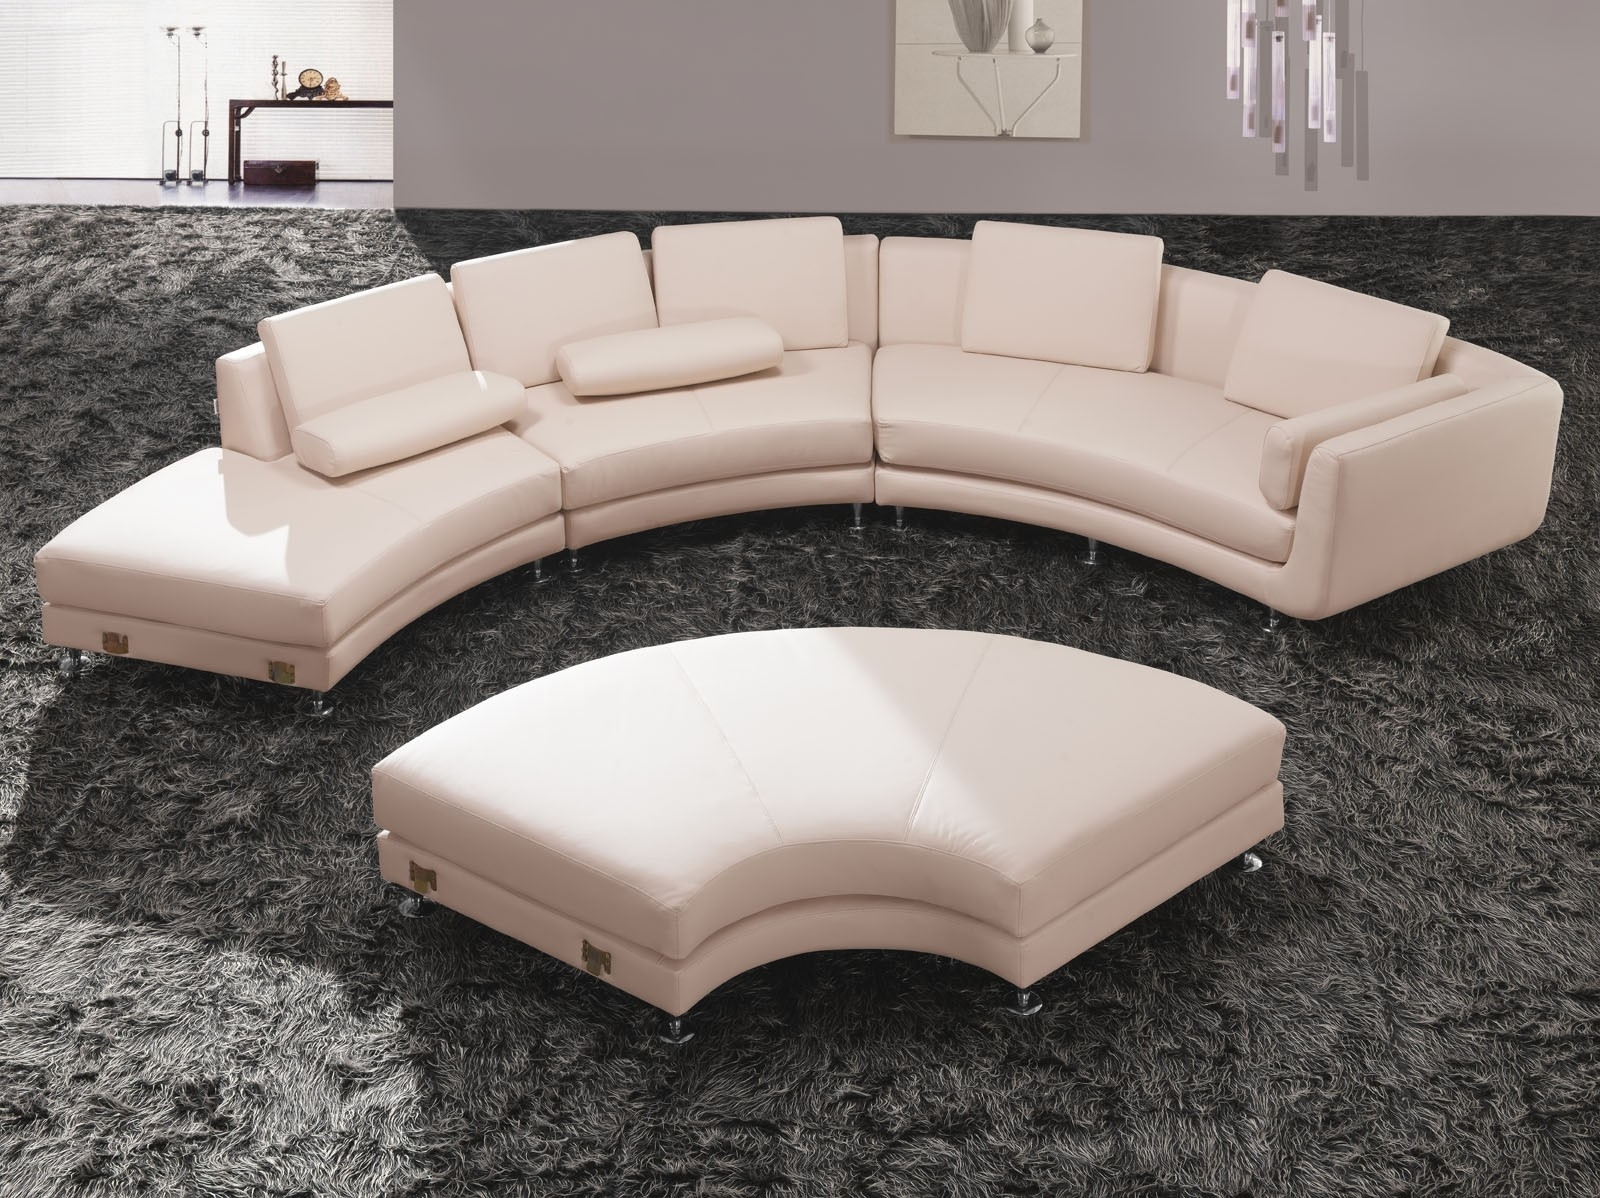 Rounded Sofas Pertaining To 2017 Sofa : Glamorous Round Sectional Sofa Bed Curved Leather Tufted (View 7 of 15)